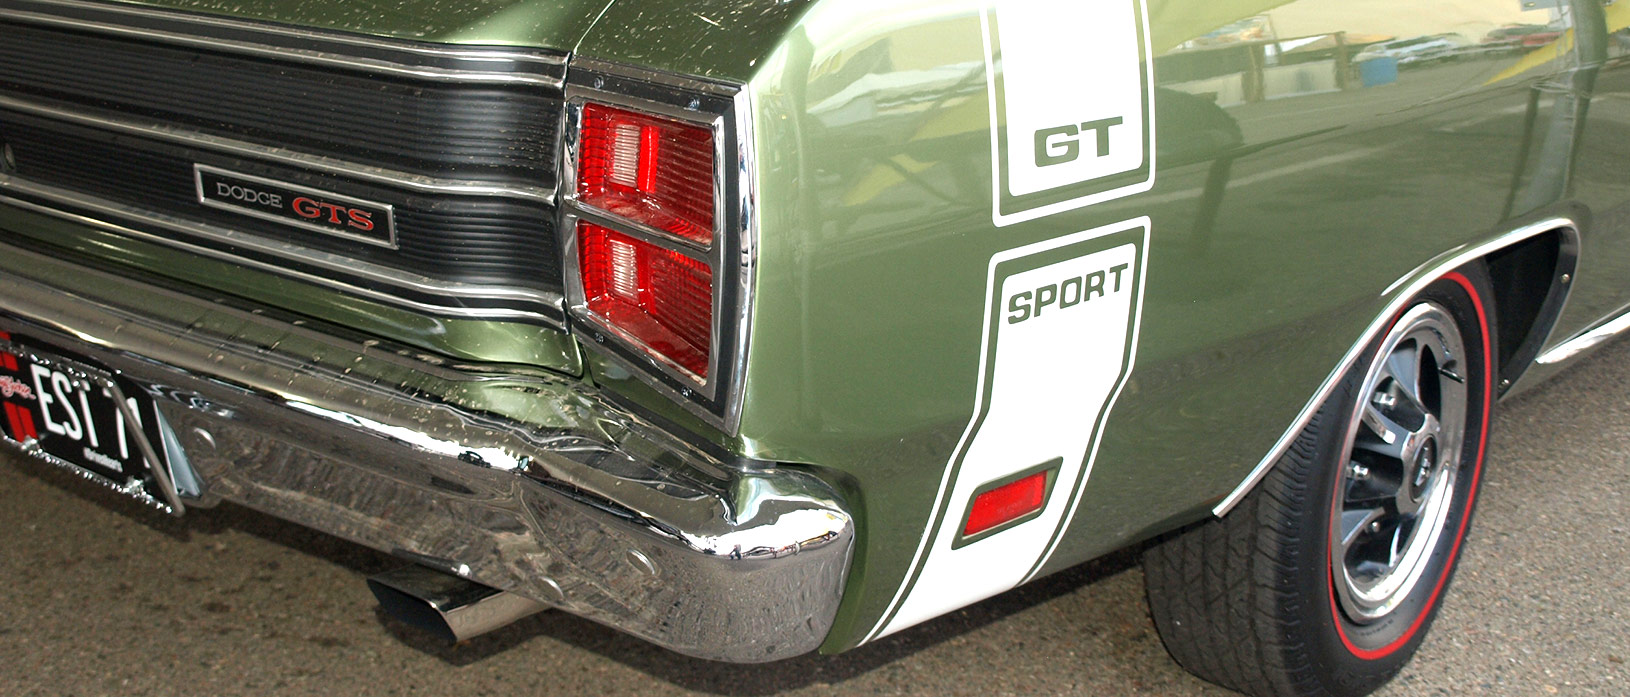 Like every member of the Dodge Scat Pack, the 1969 Dart 440 GTS came standard with a Bumble Bee stripe for quick identification. The sinister red-lettered GTS trunk emblem stands for GT Sport. Note the standard issue chromed exhaust tips, a Package Car first.